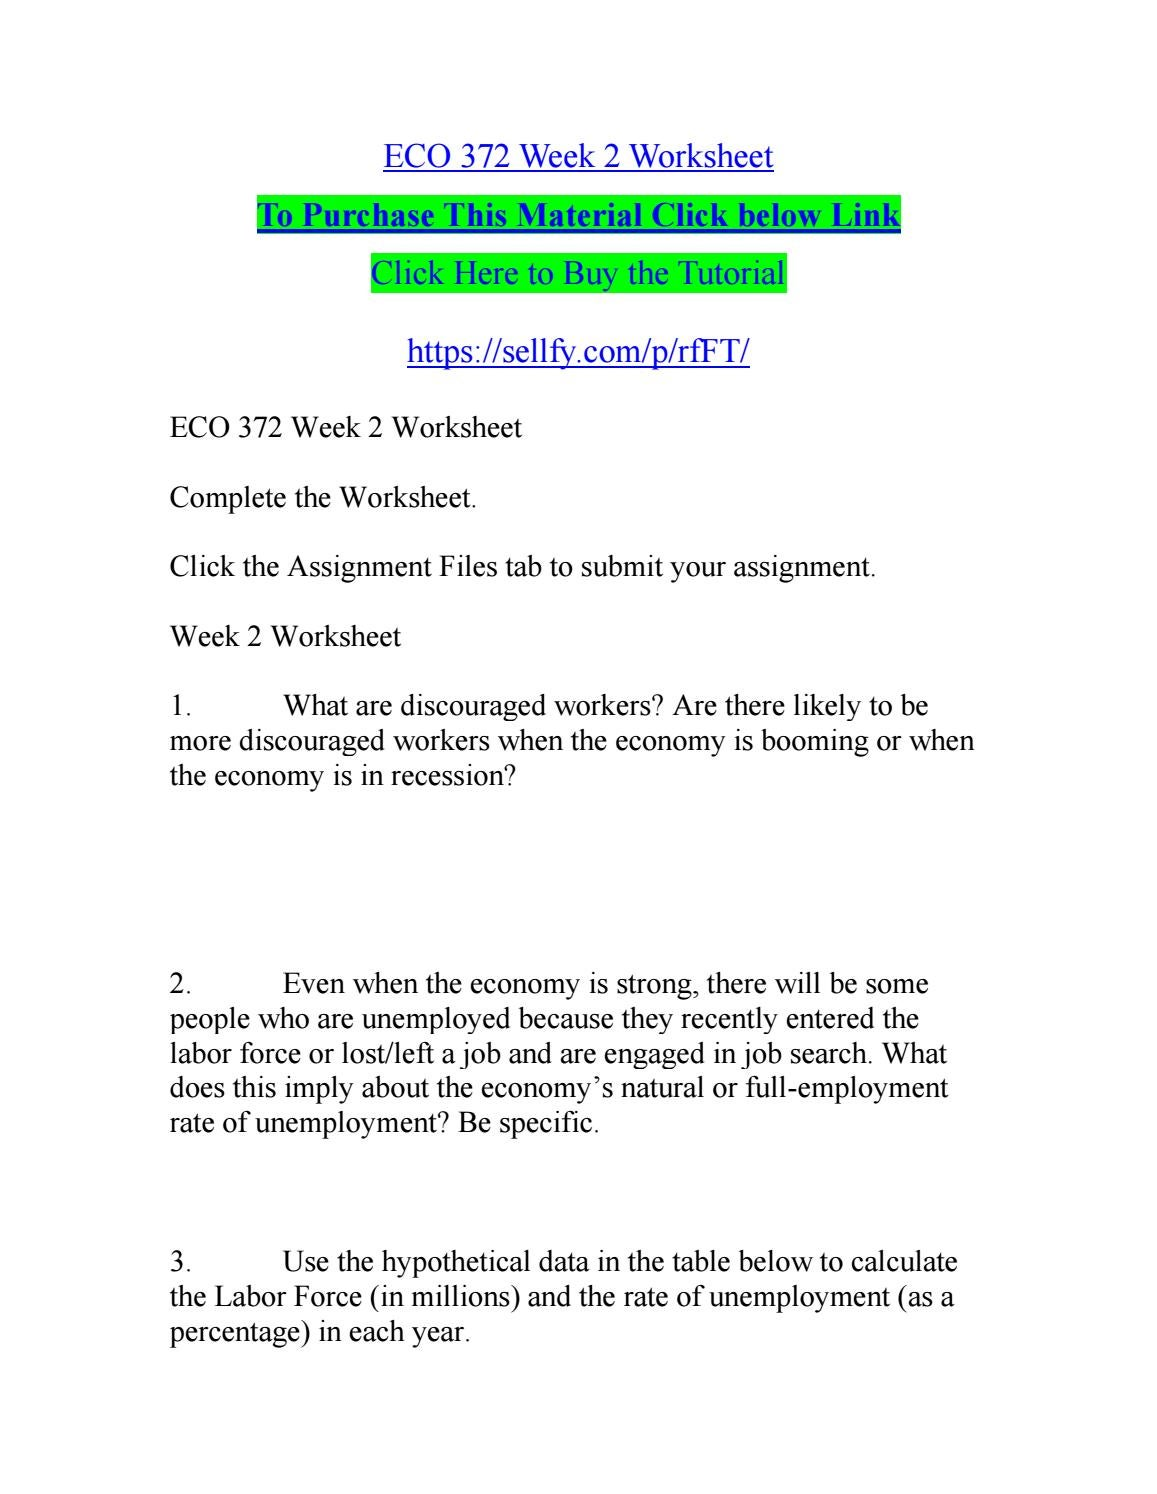 How to submit job search for unemployment